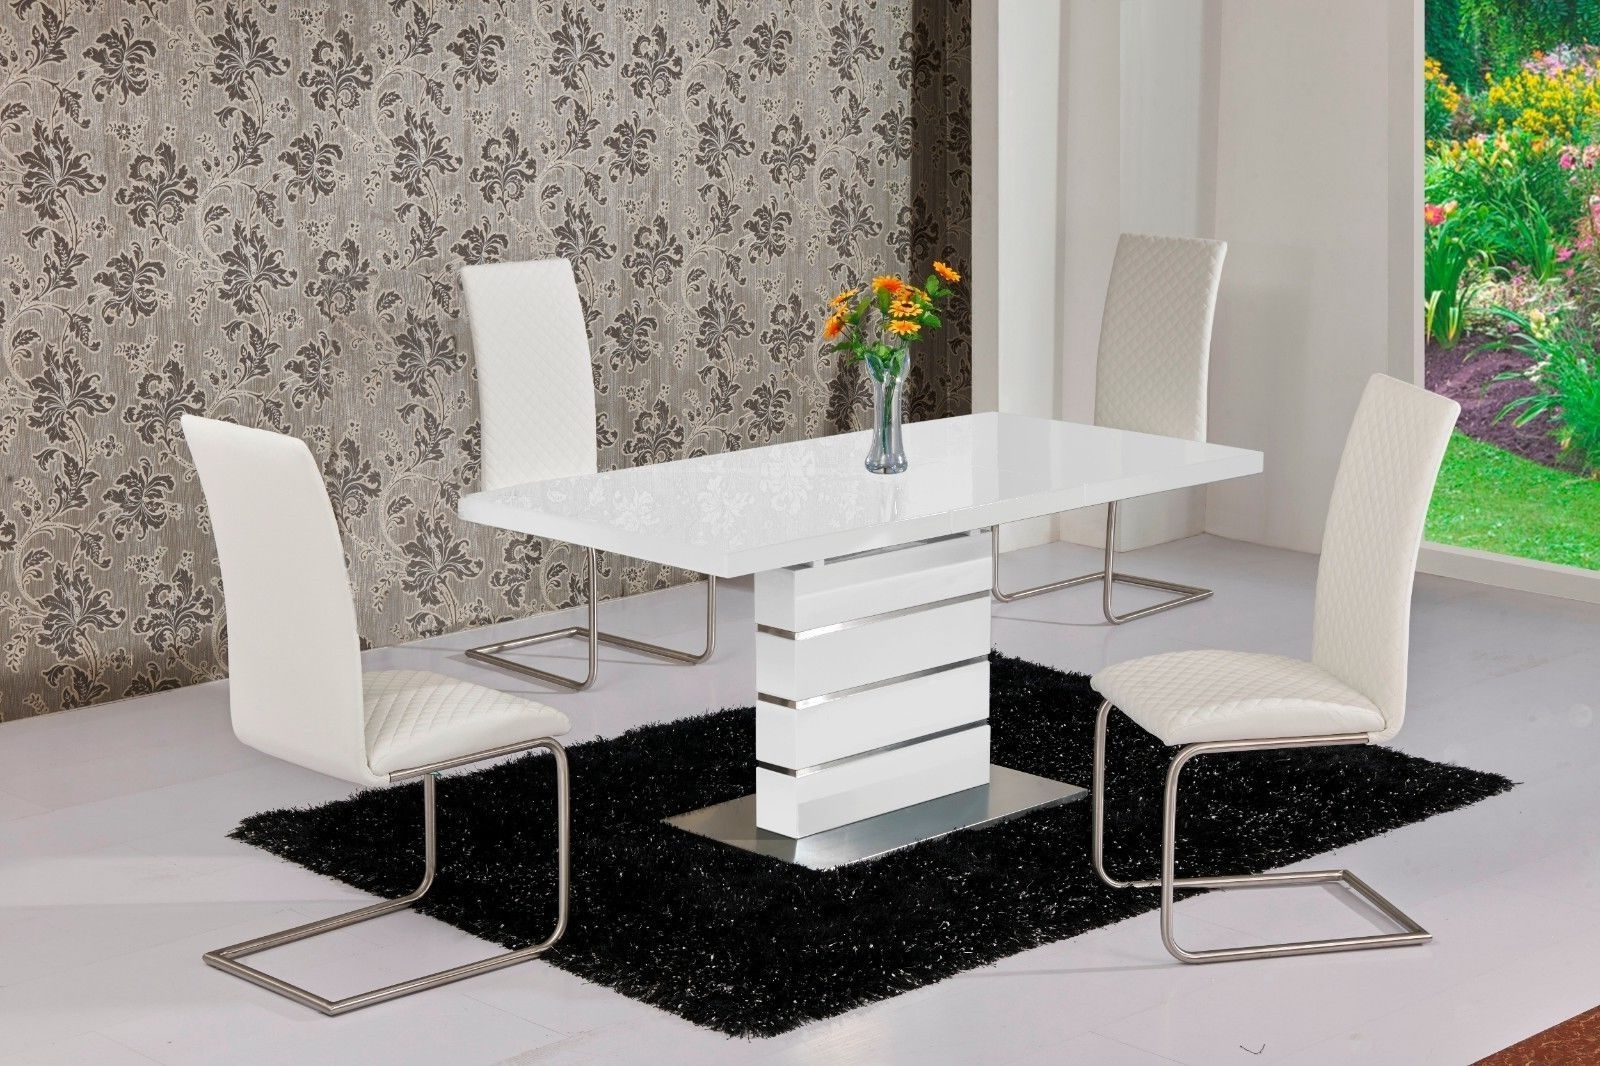 Extendable Dining Table And 4 Chairs With Regard To Favorite Mace High Gloss Extending 120 160 Dining Table & Chair Set – White (View 6 of 25)